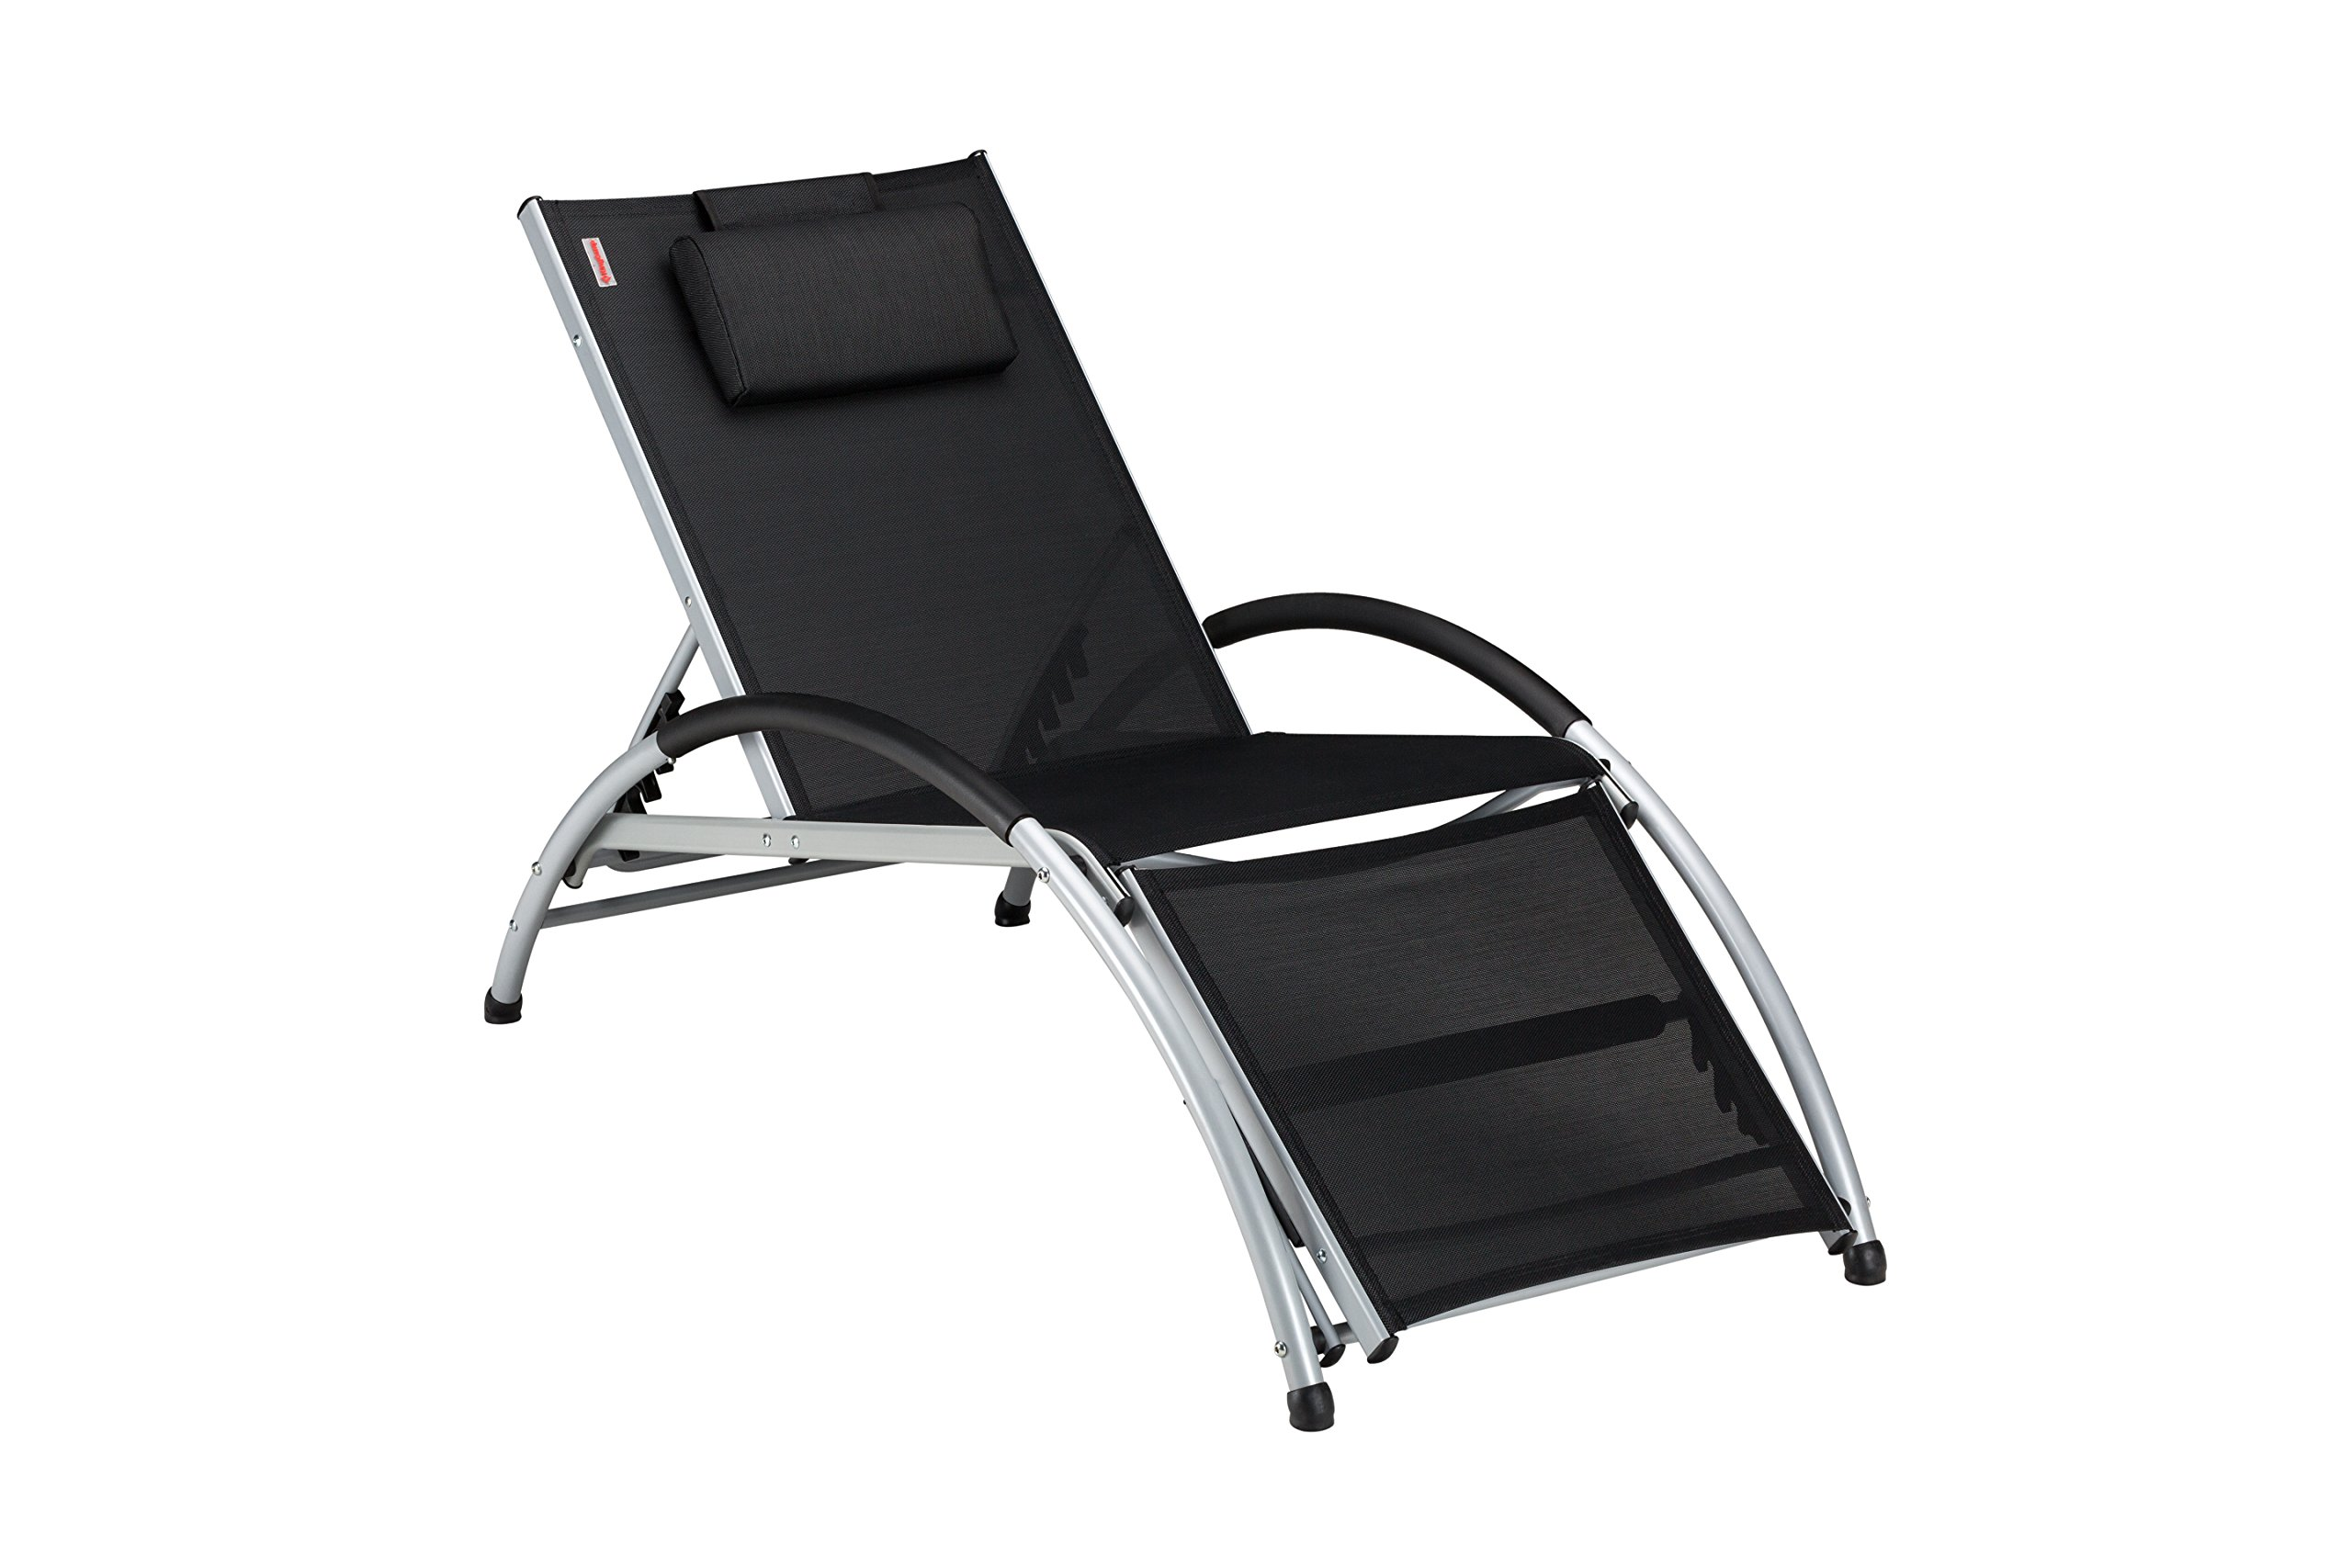 Multifunctional Sex Chair Folding Stool Furniture Adjustable and Removable Adult Couple Chair